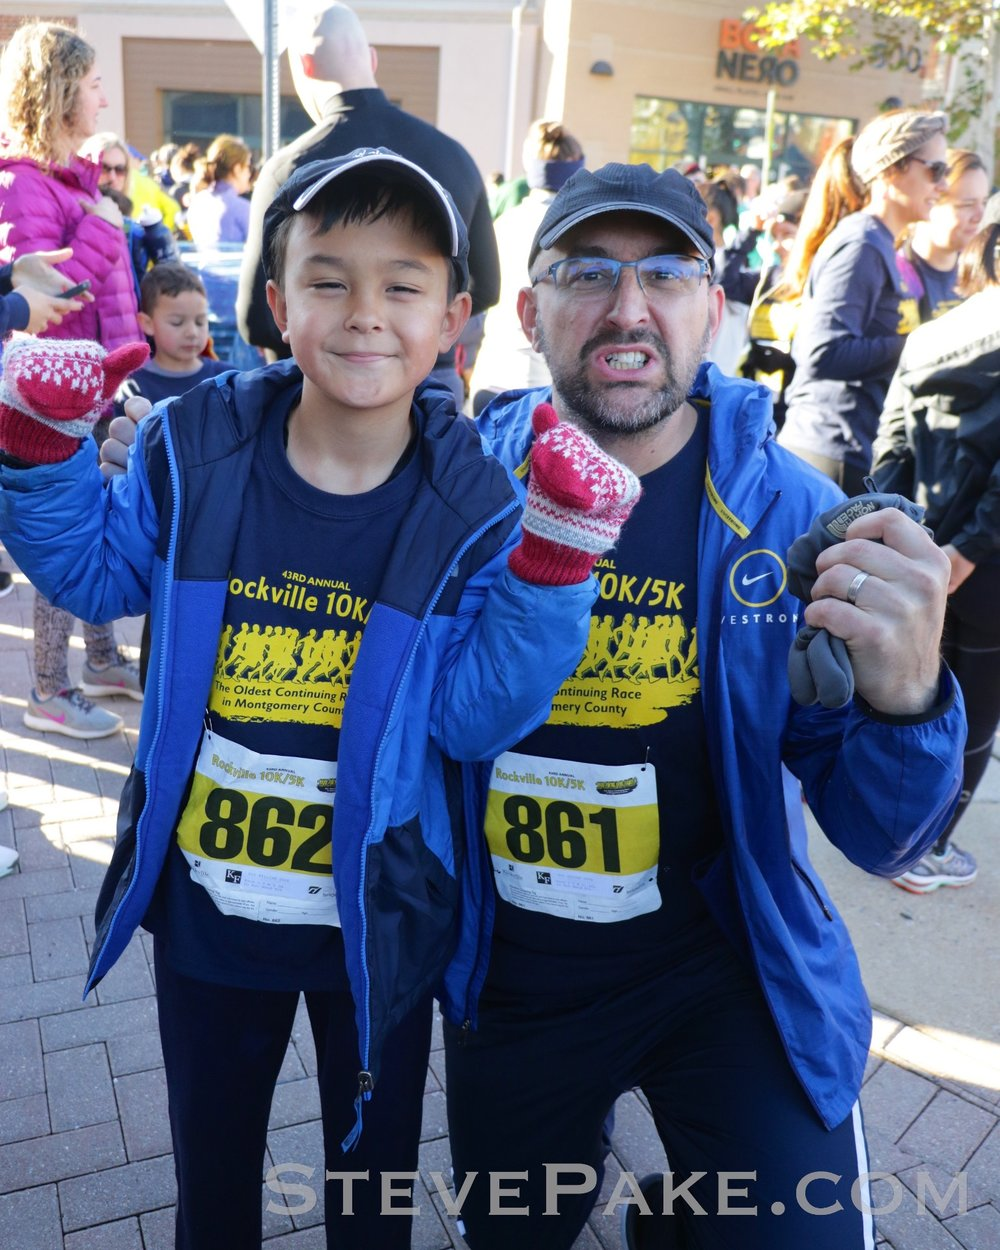 For our second 5K of 2019, we did the Rockville 5K which runs right through our neighborhood. I just never had time to really train and did another 31 minutes, but William hauled and did a low-29 minute time. He's a natural! So proud! :)